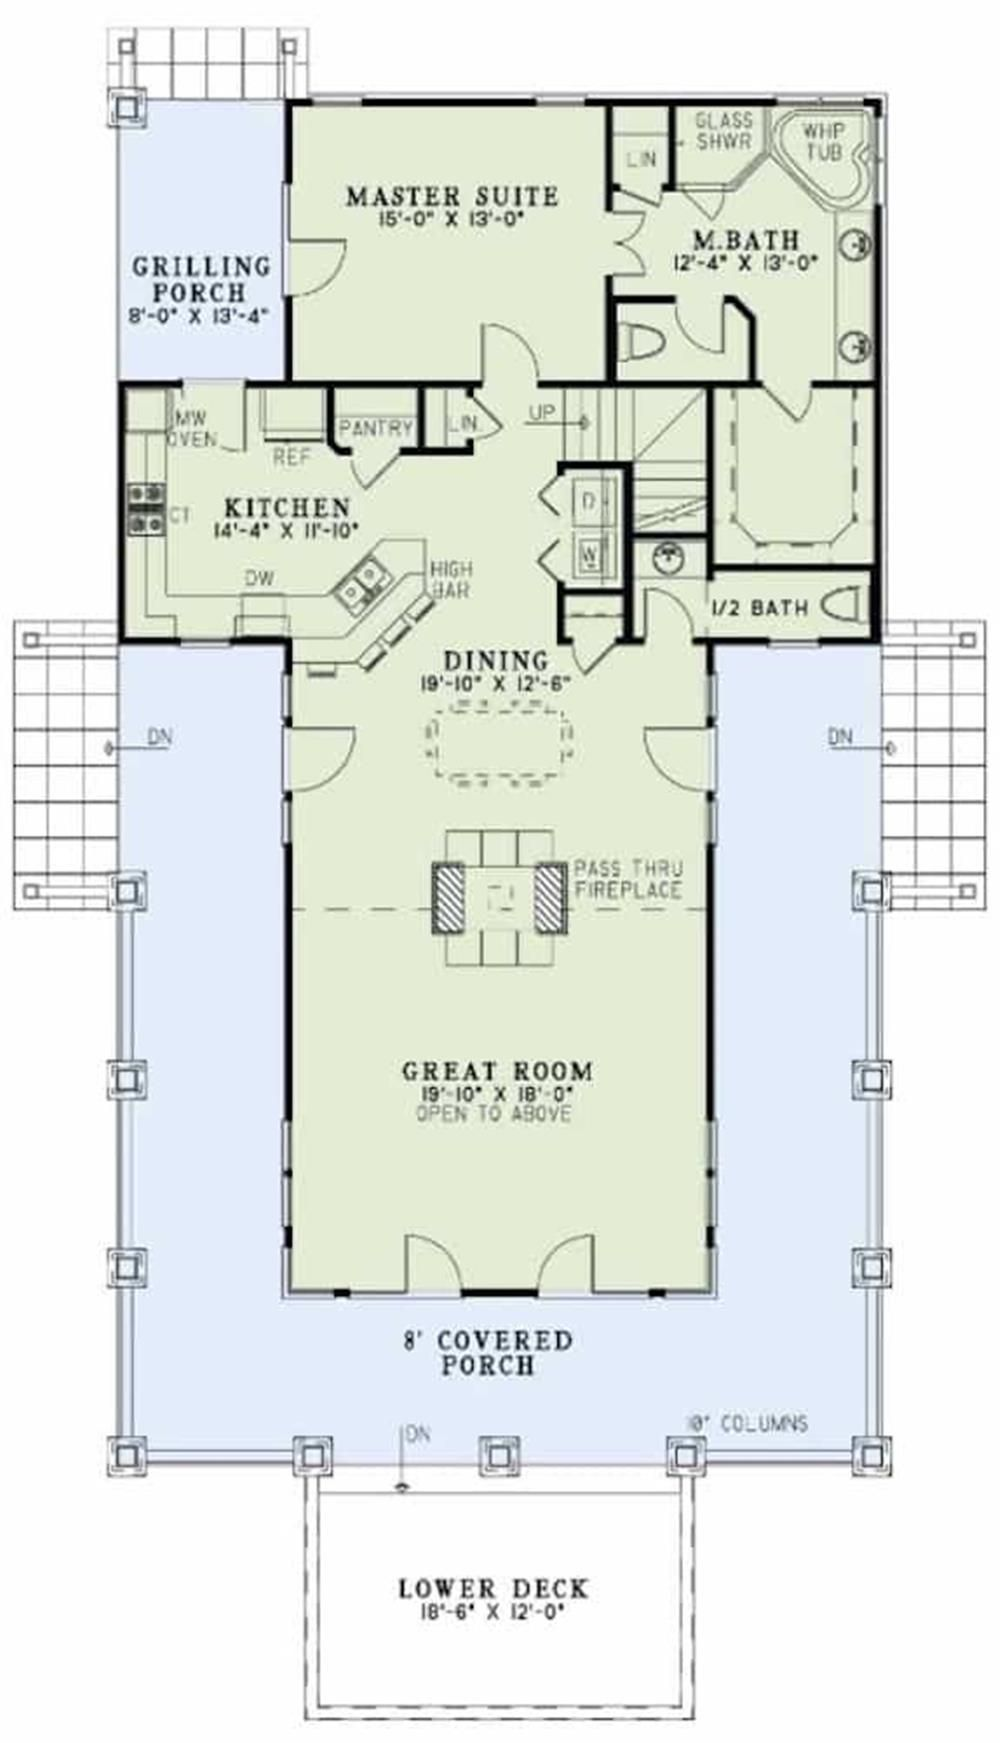 153 1910 153 1910 Floor Plan Main Level How To Plan House Plans Small House Plans